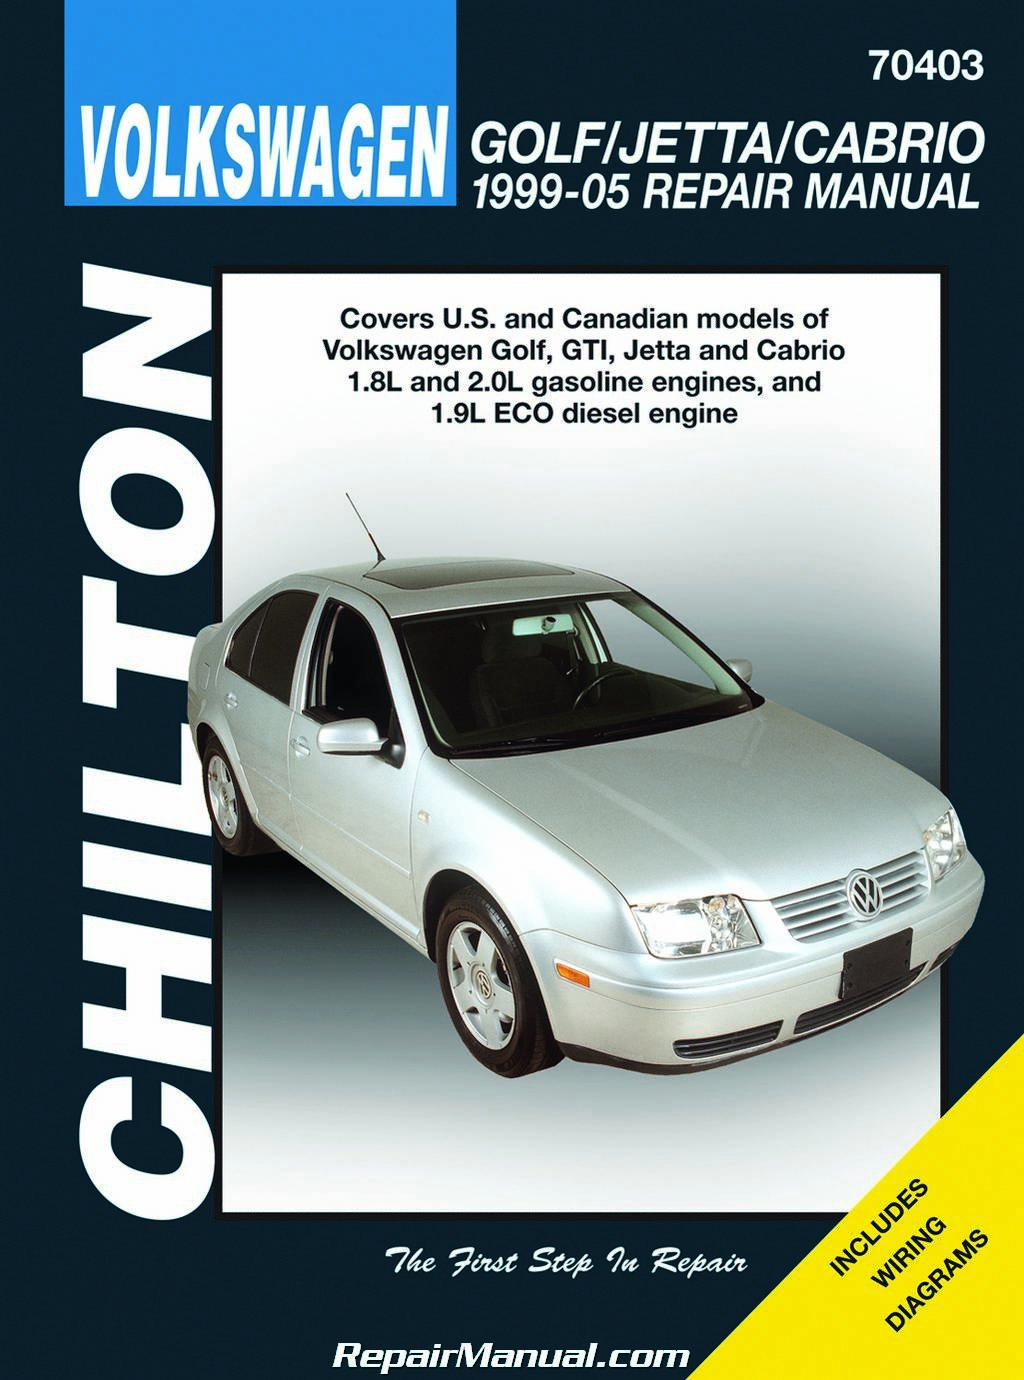 CH70403 Volkswagen Golf Jetta GTI Repair Manual 1999-2005 Chilton:  Manufacturer: Amazon.com: Books